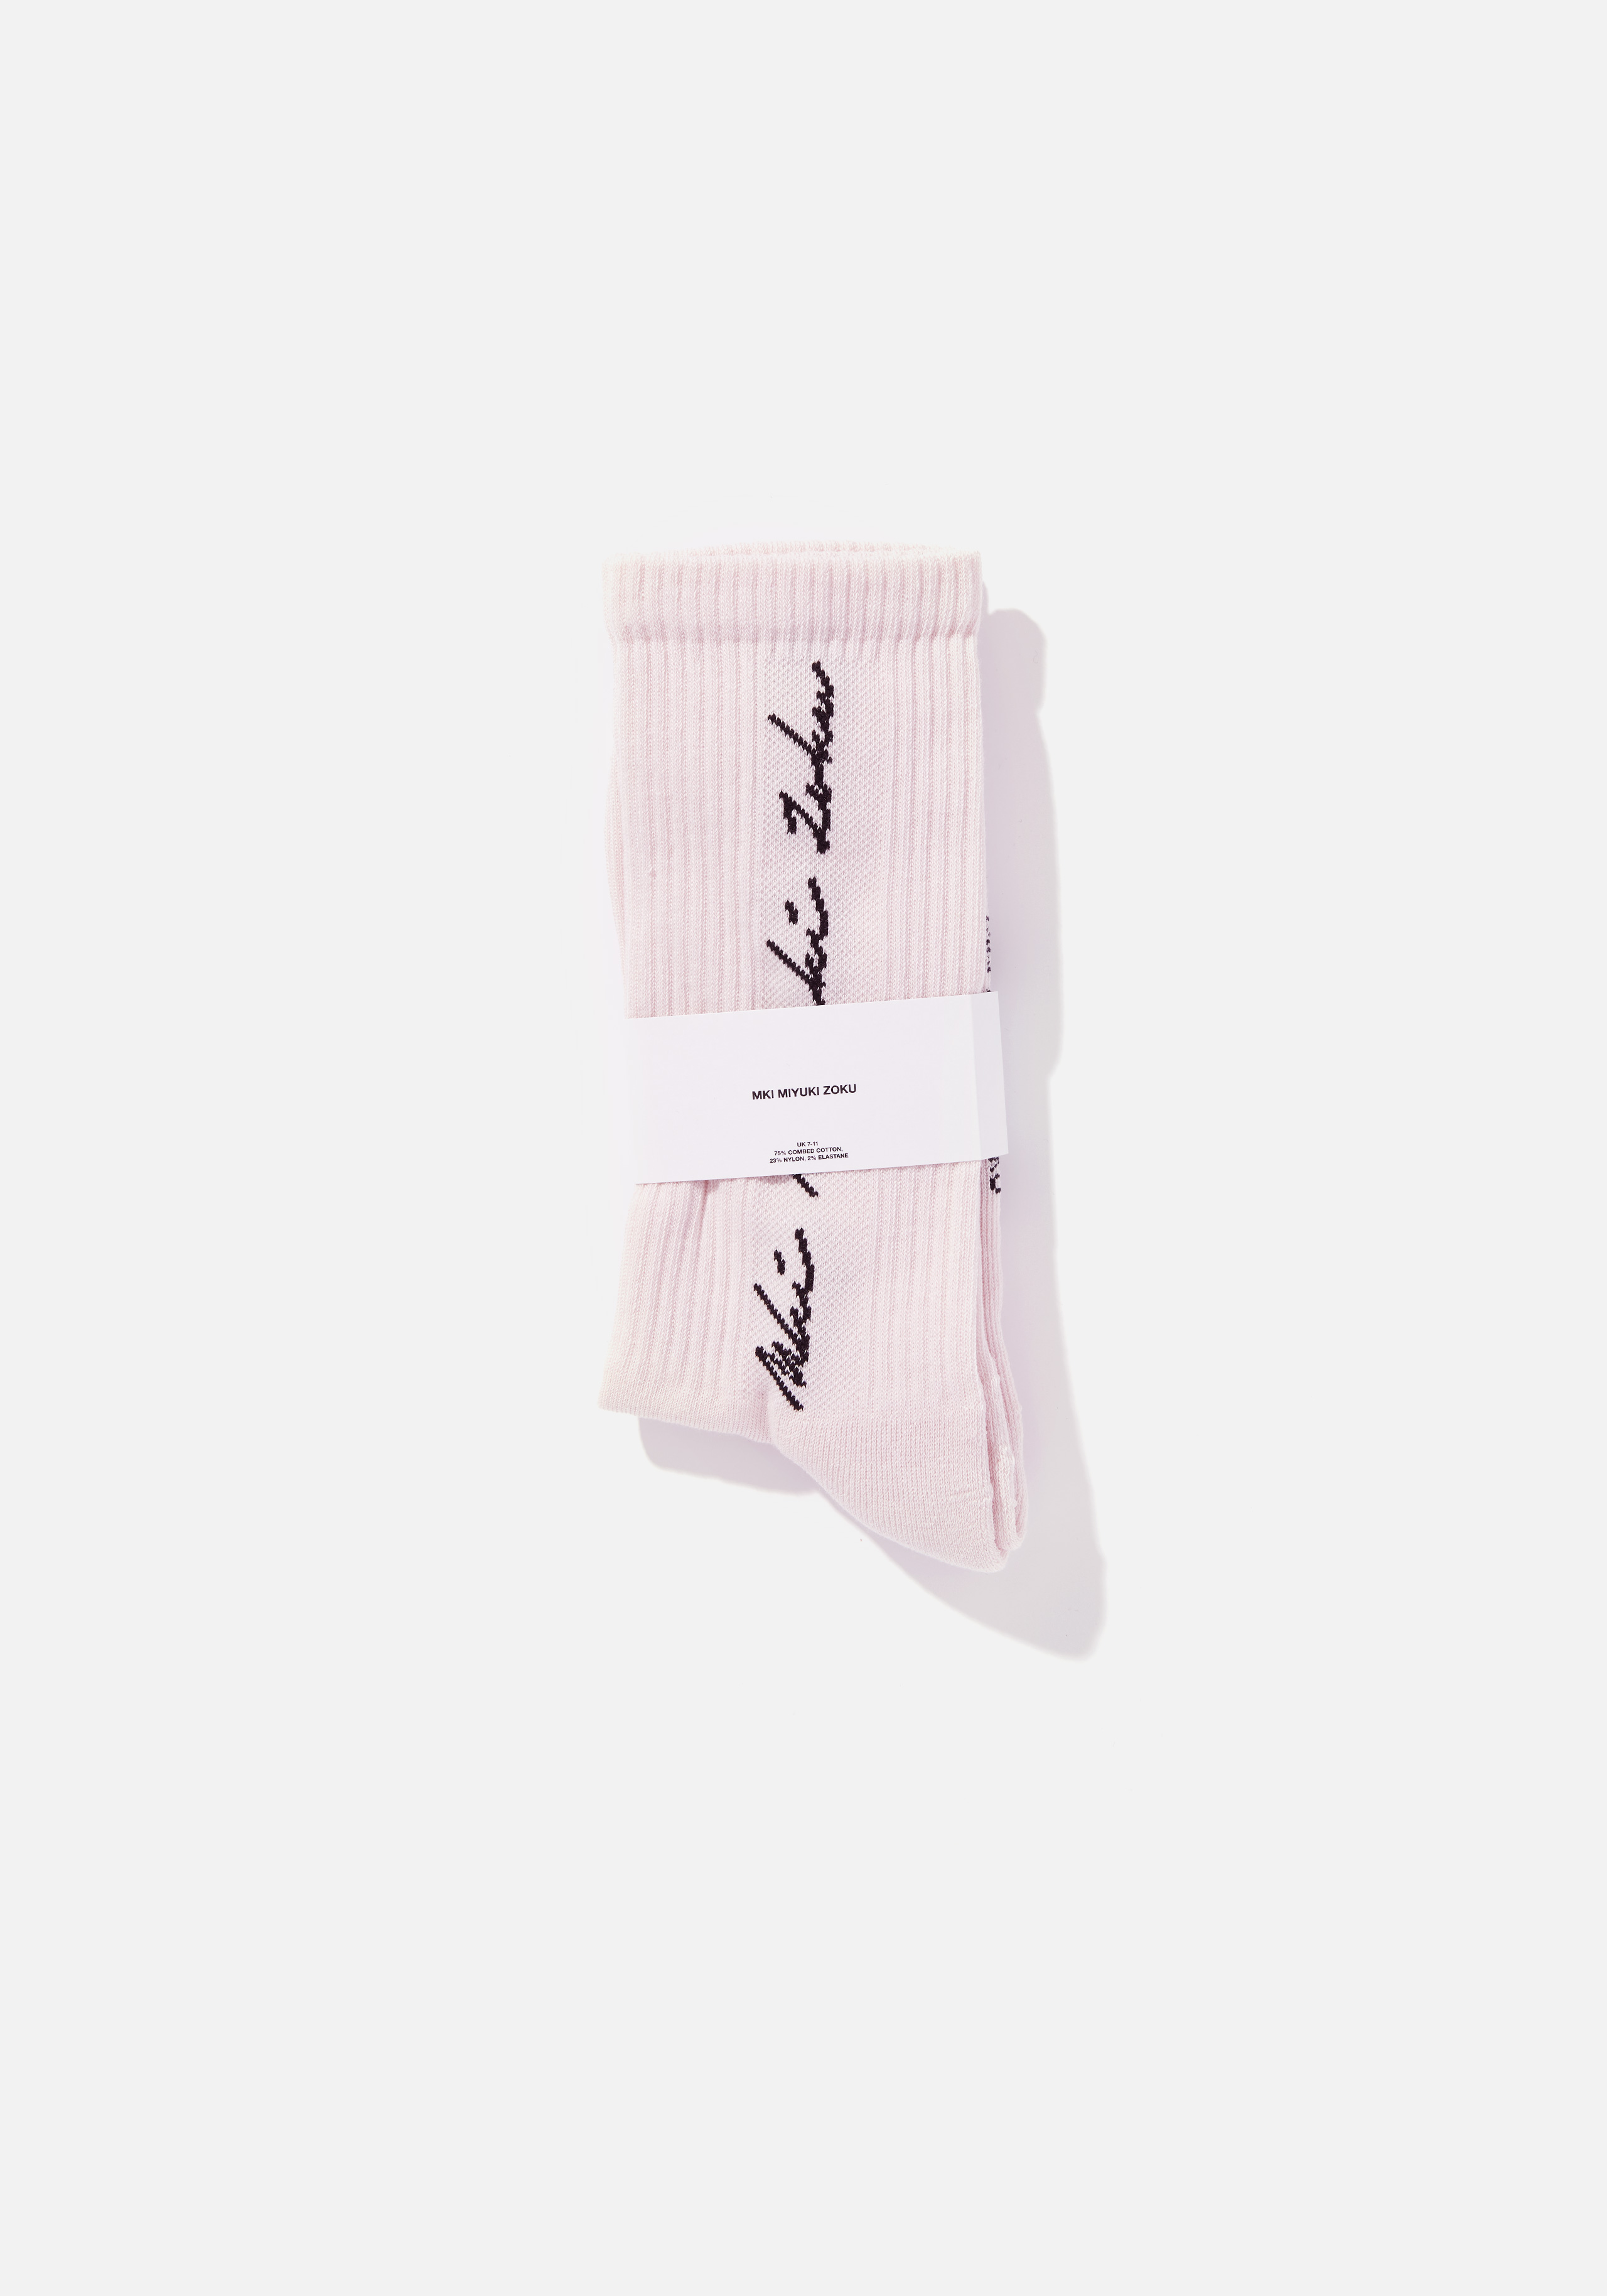 mki signature socks 2